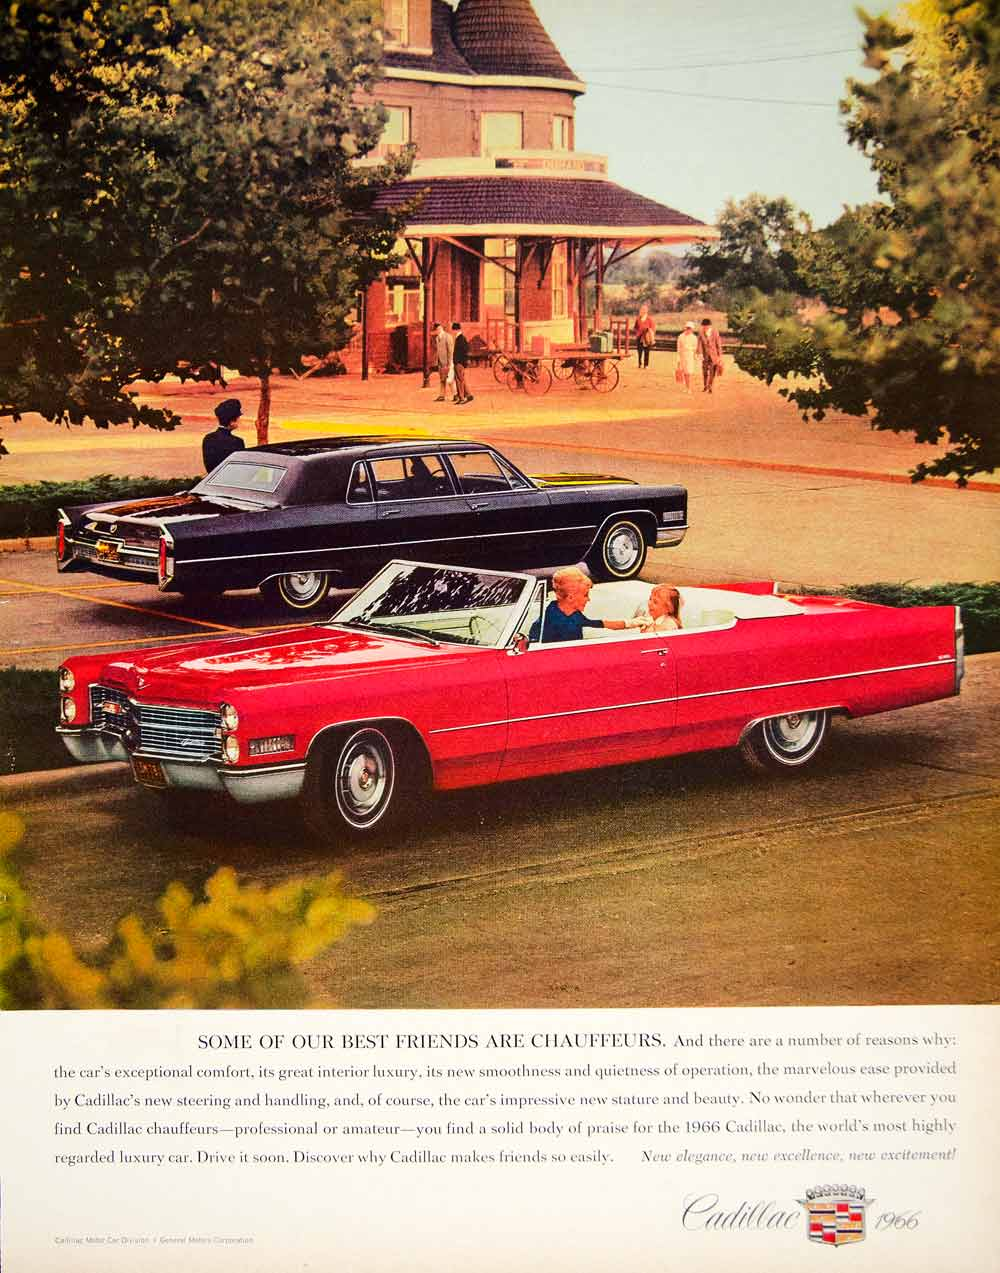 1966 Ad Vintage Cadillac Convertible Red Car Luxury Automobile Chauffeur YFM2